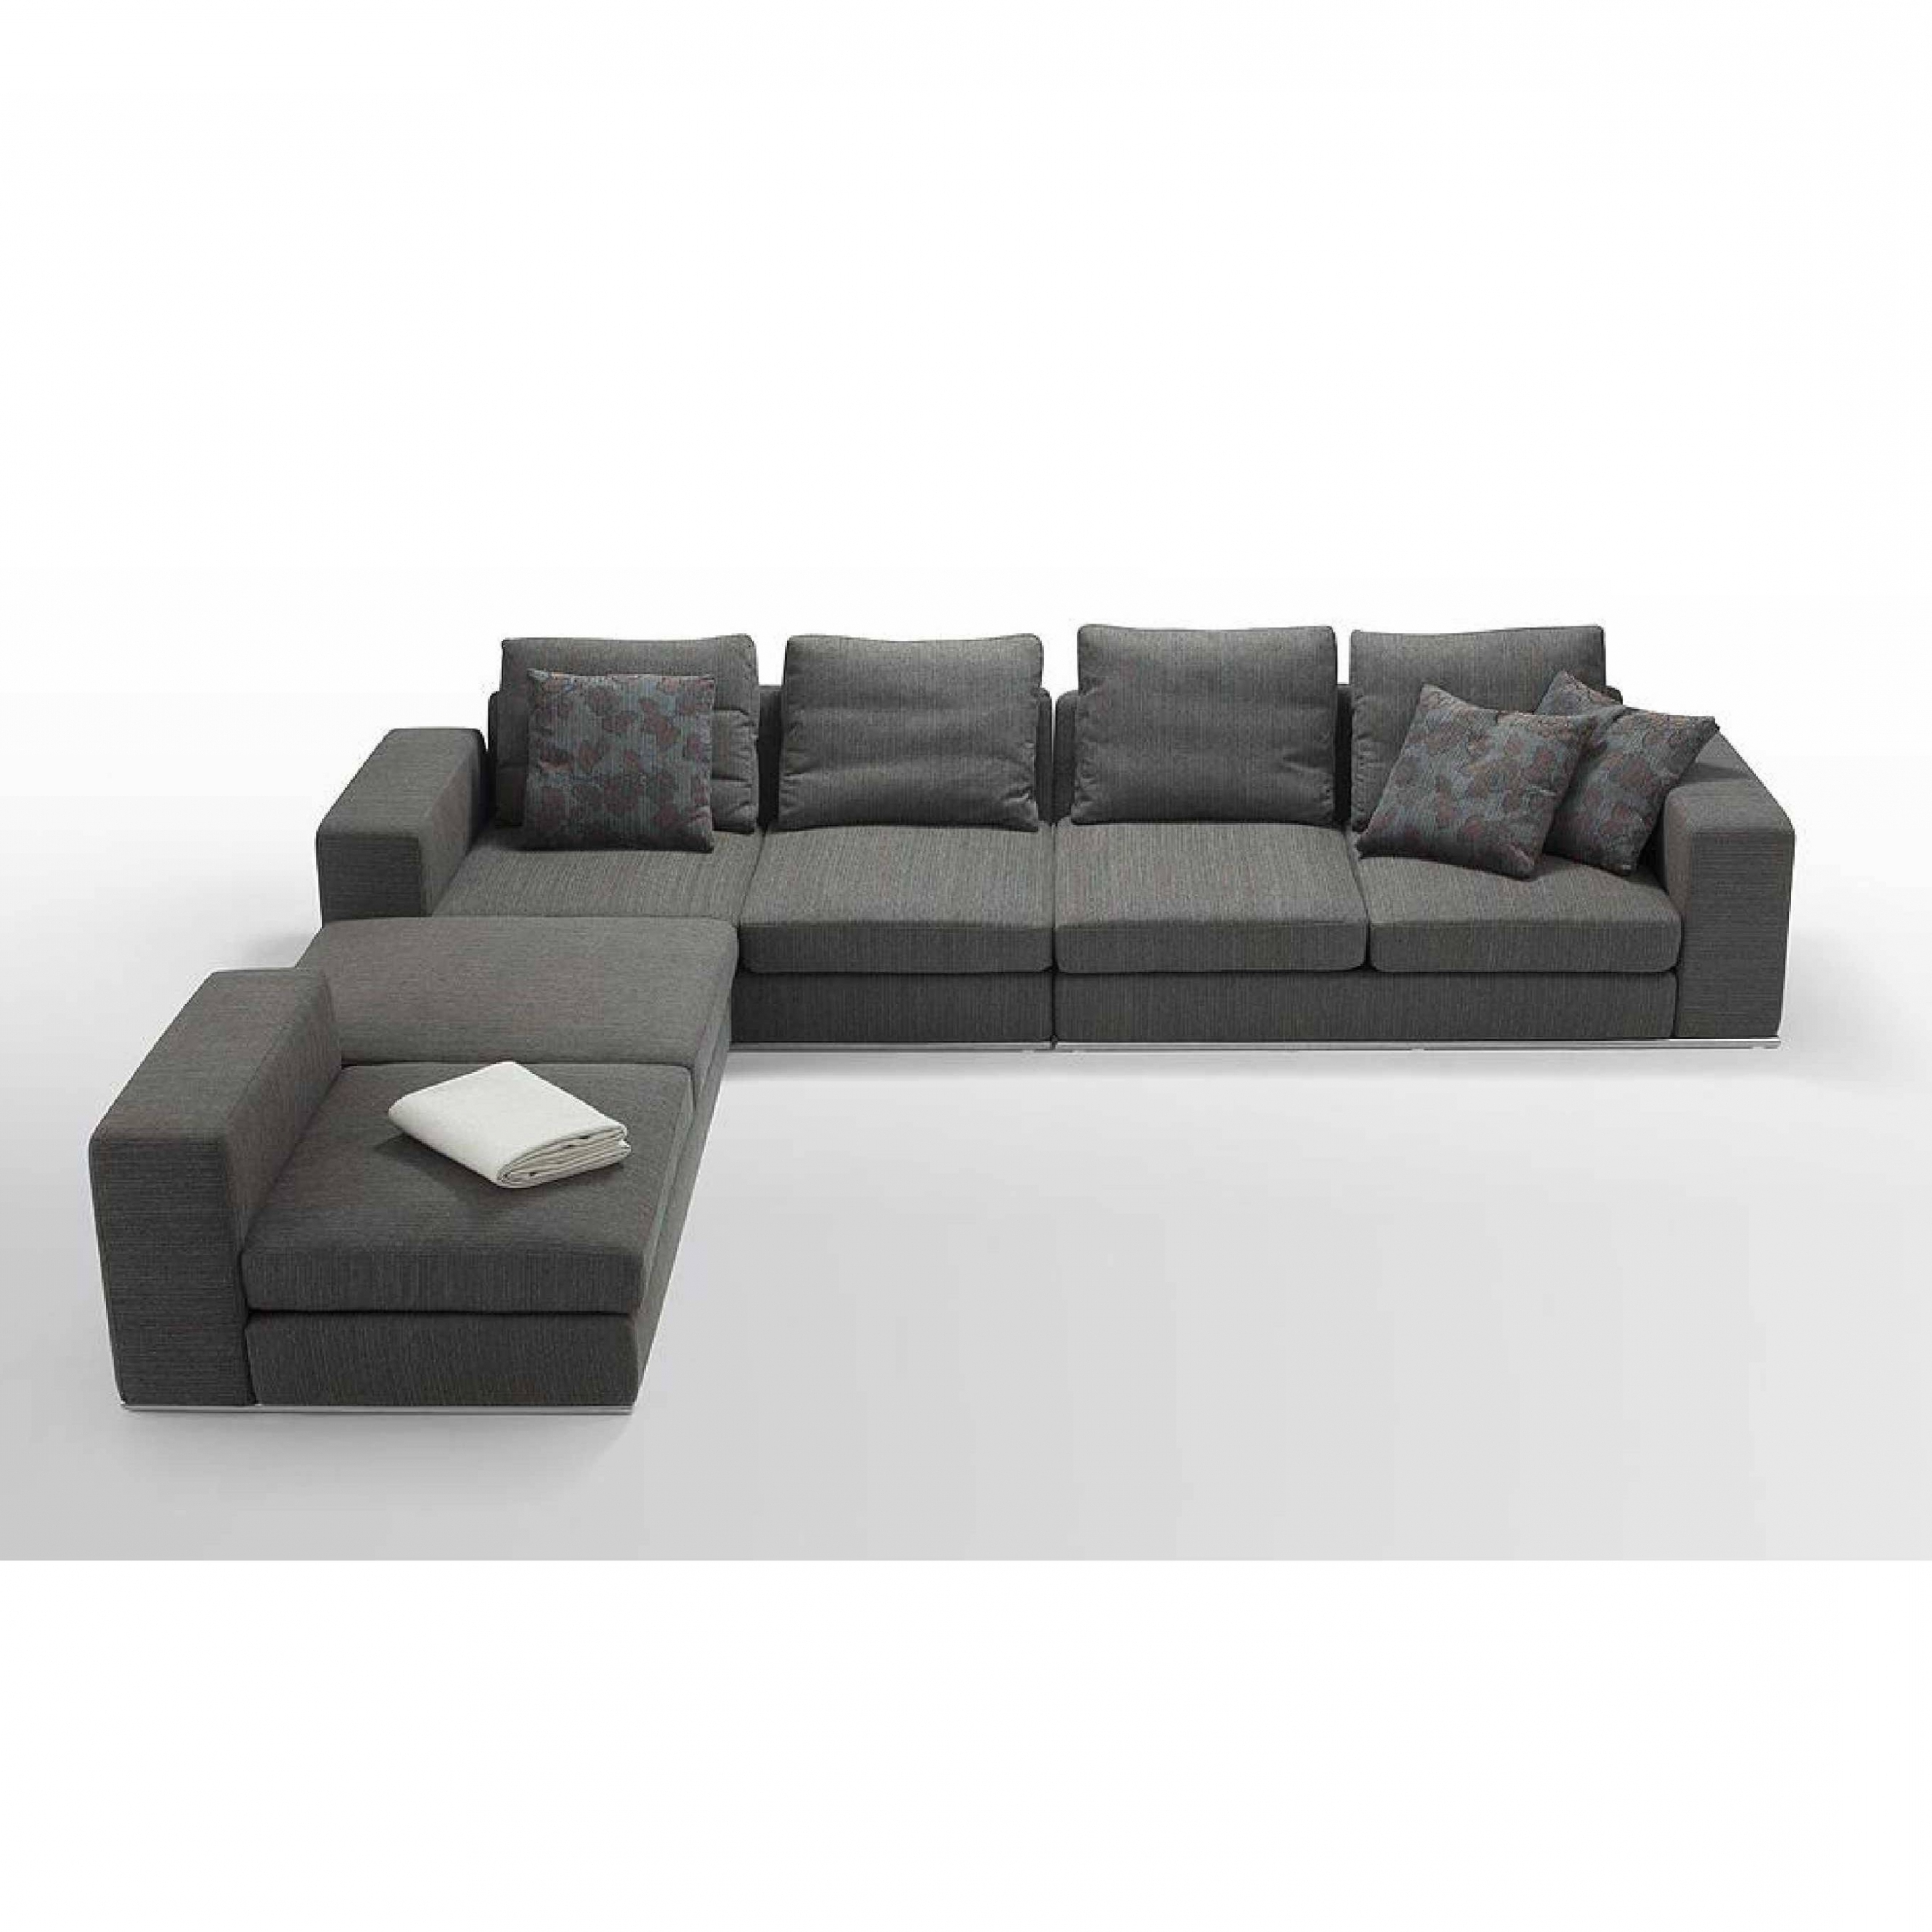 ideas sectional signature designashley casual contemporary sleepers coats of ashley sofa piece sleeper latest image in